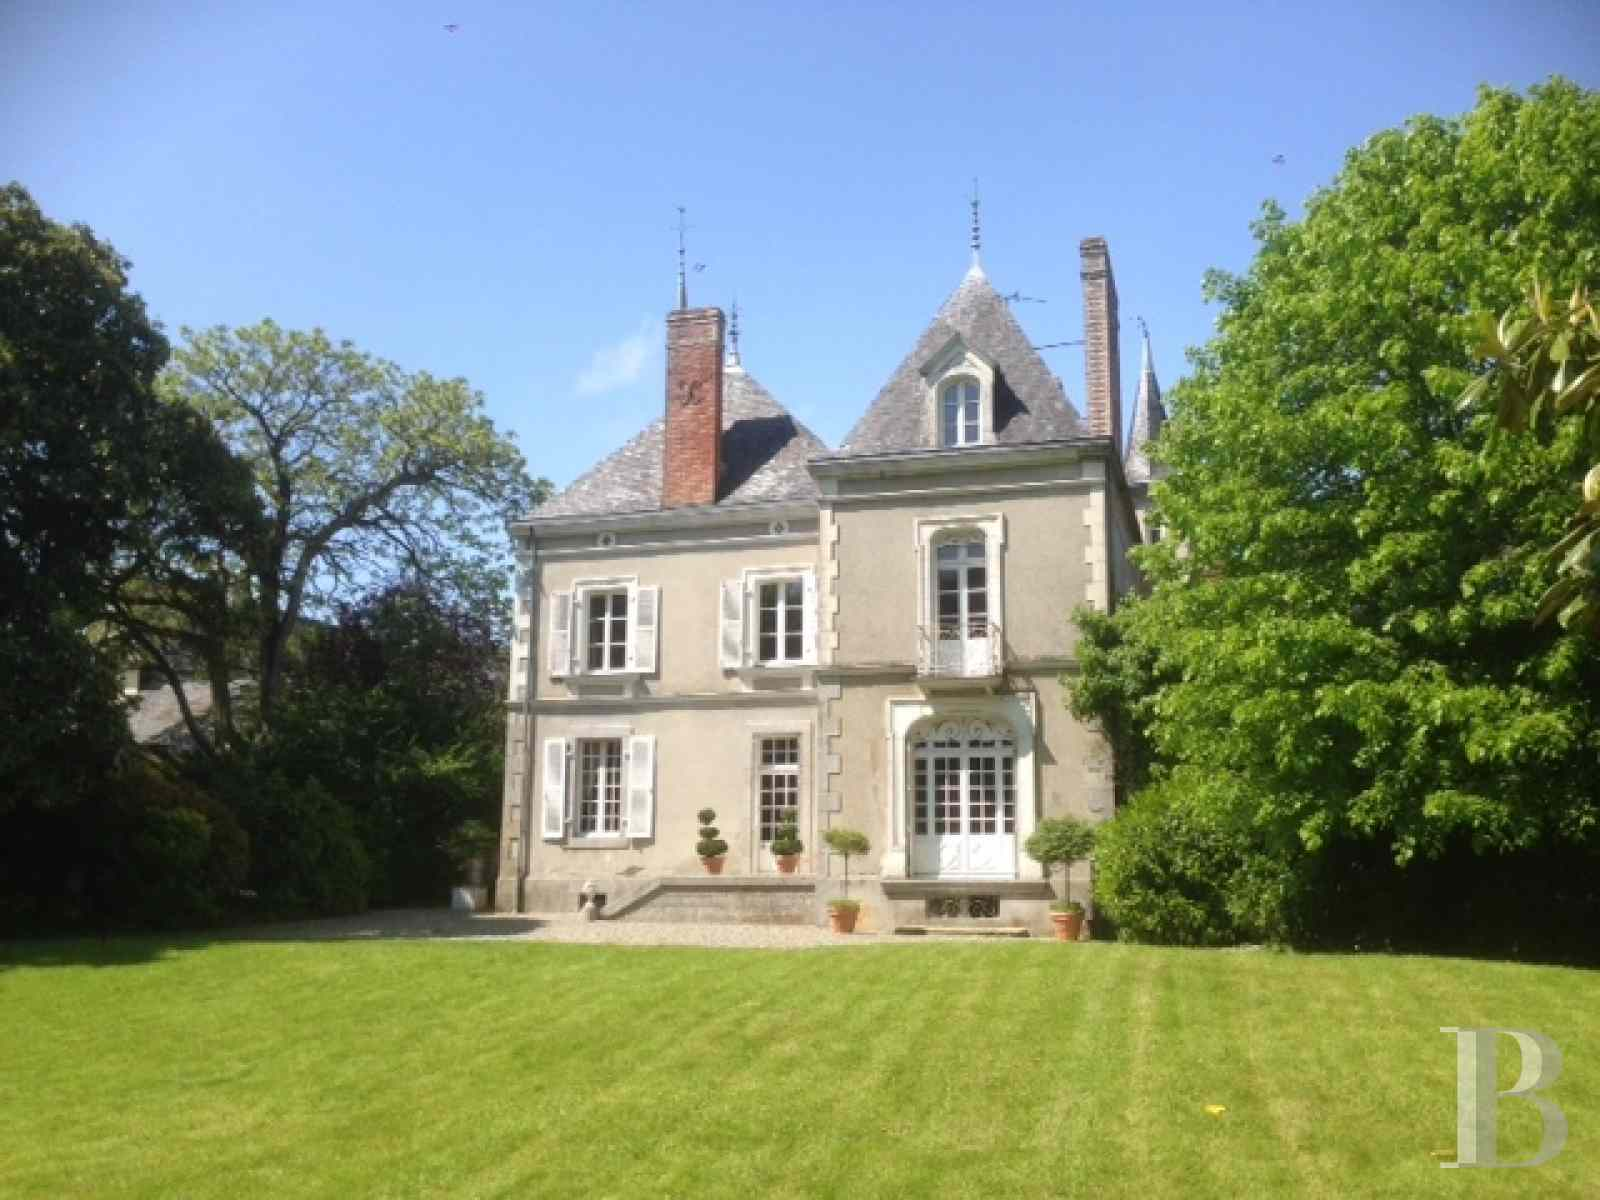 property for sale France brittany property ille - 1 zoom